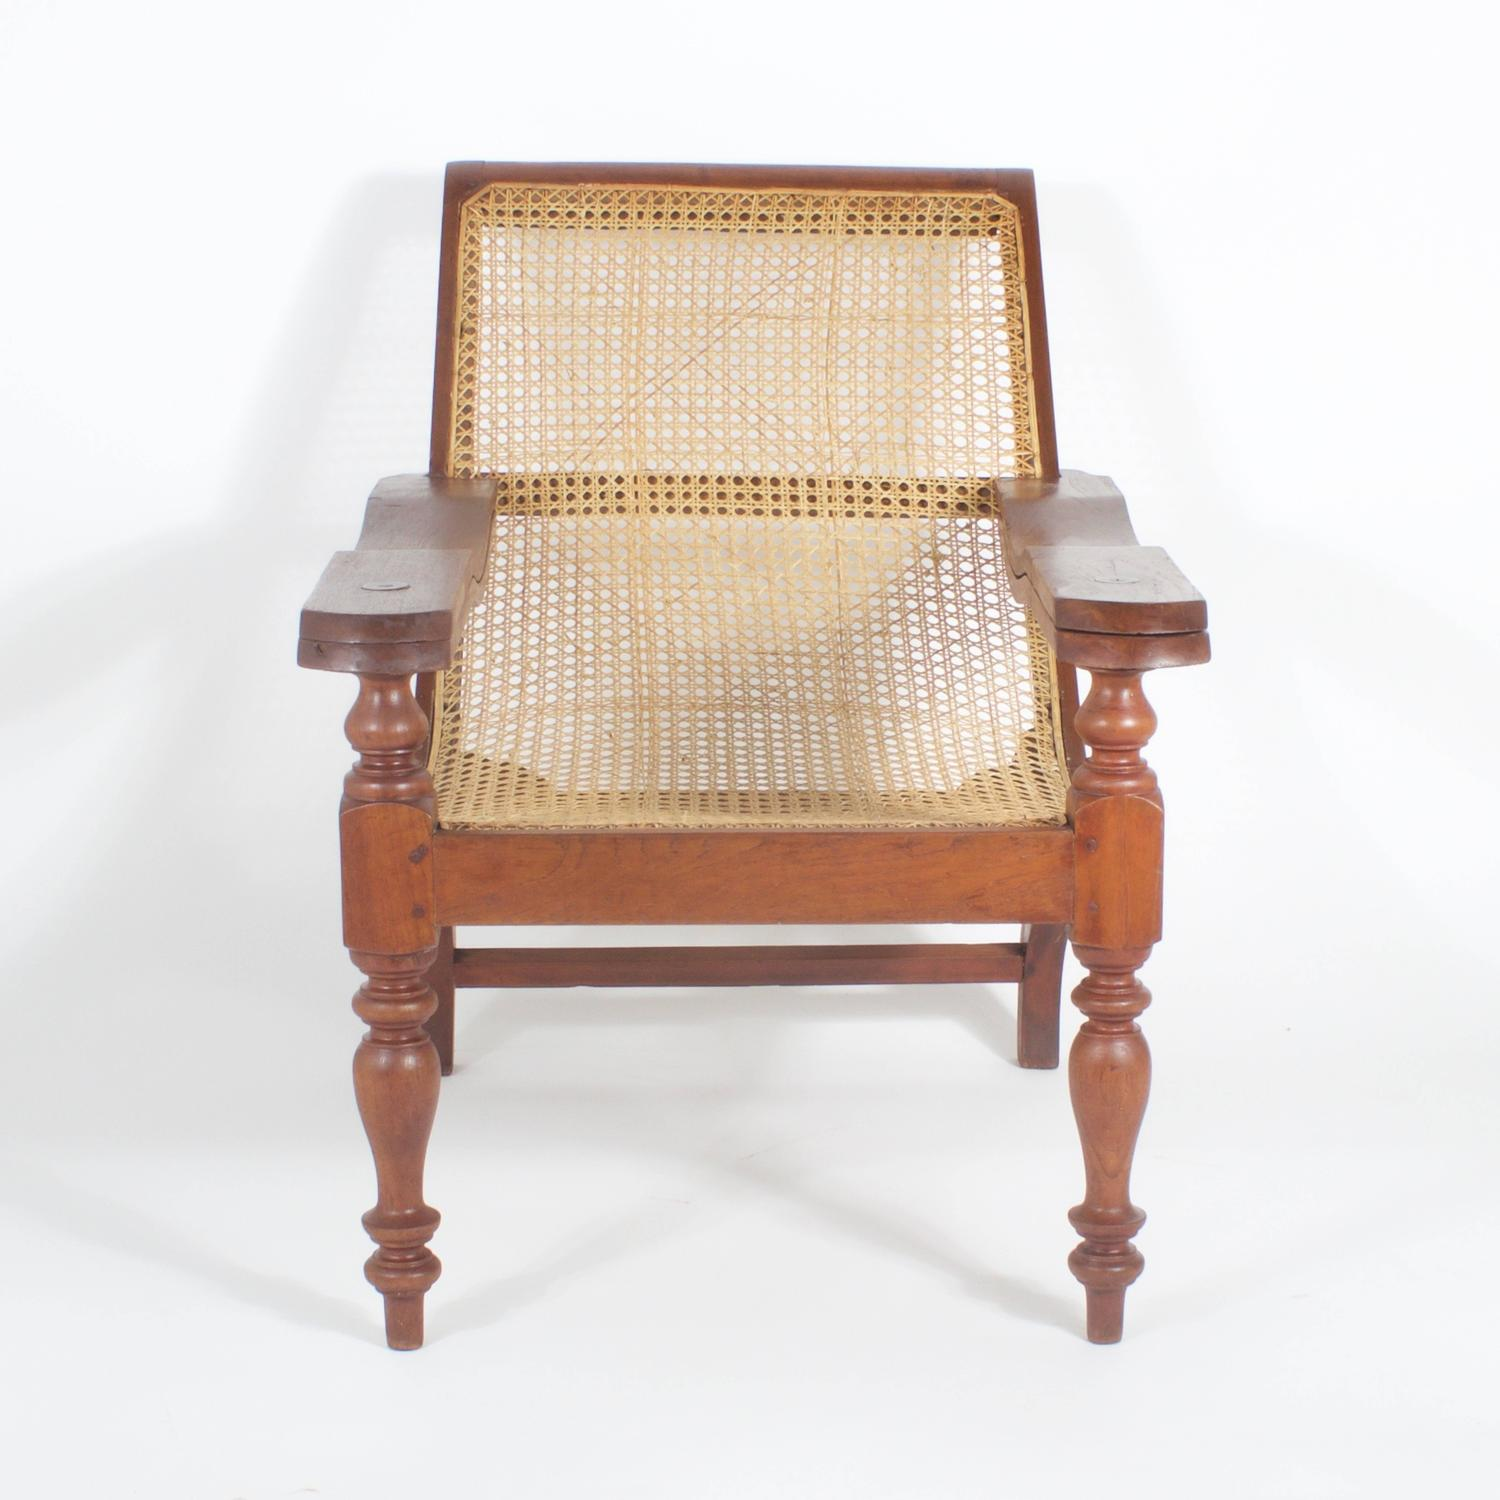 plantation style chairs lounge chair folding cane for sale at 1stdibs